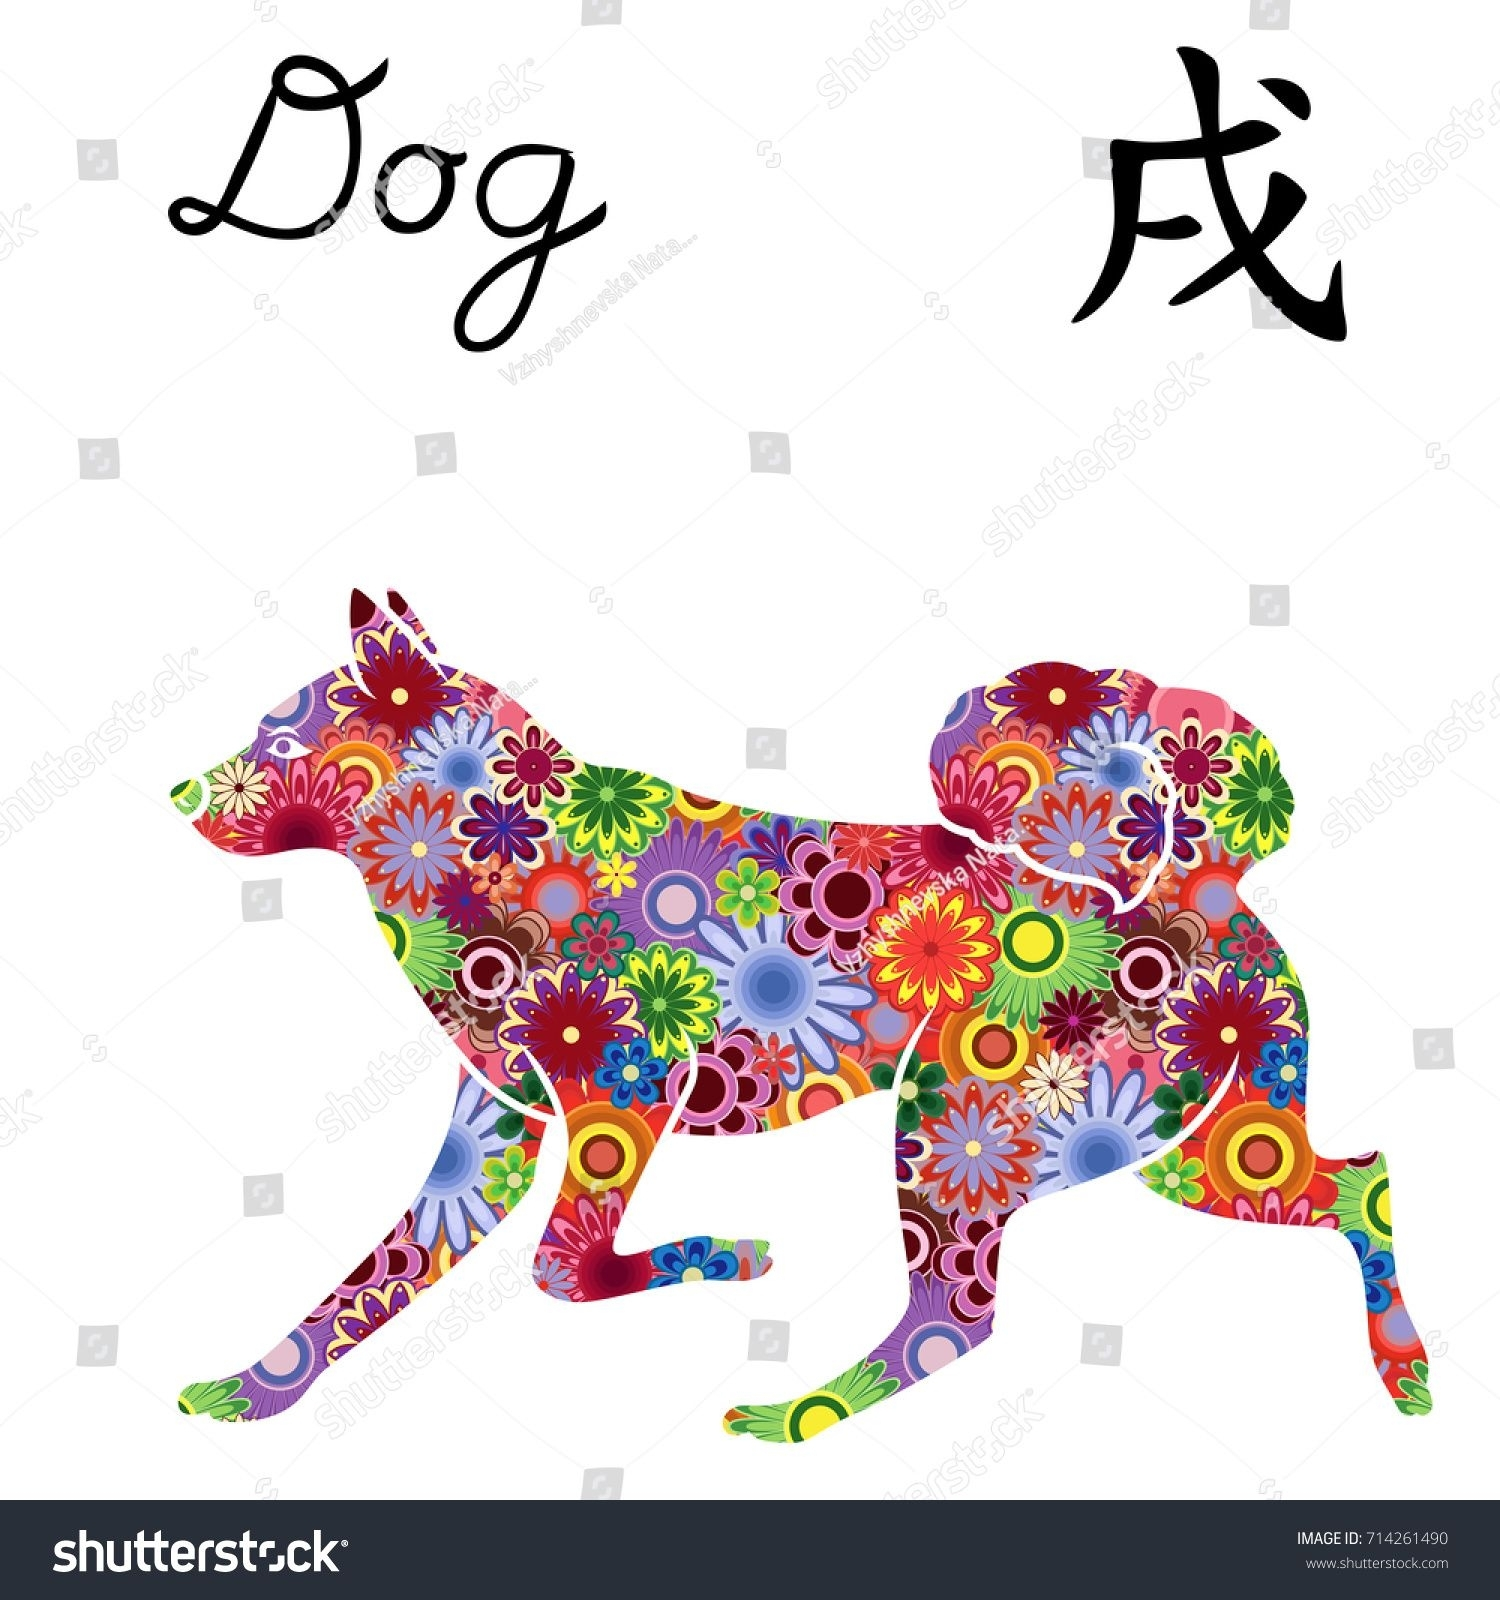 Running Dog Chinese Zodiac Sign, Stencil With Color Flowers